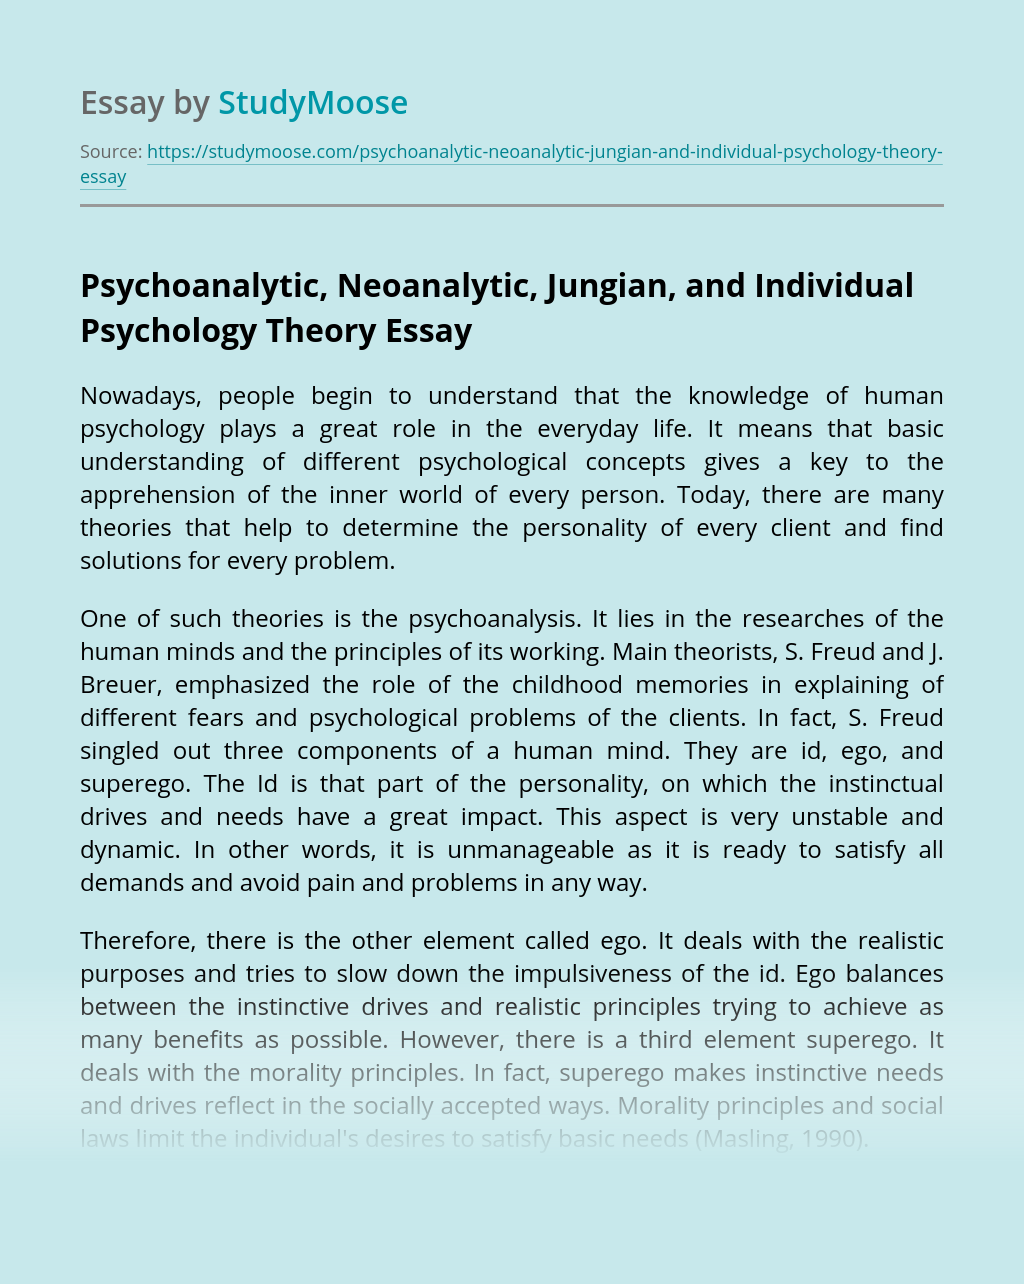 Psychoanalytic, Neoanalytic, Jungian, and Individual Psychology Theory